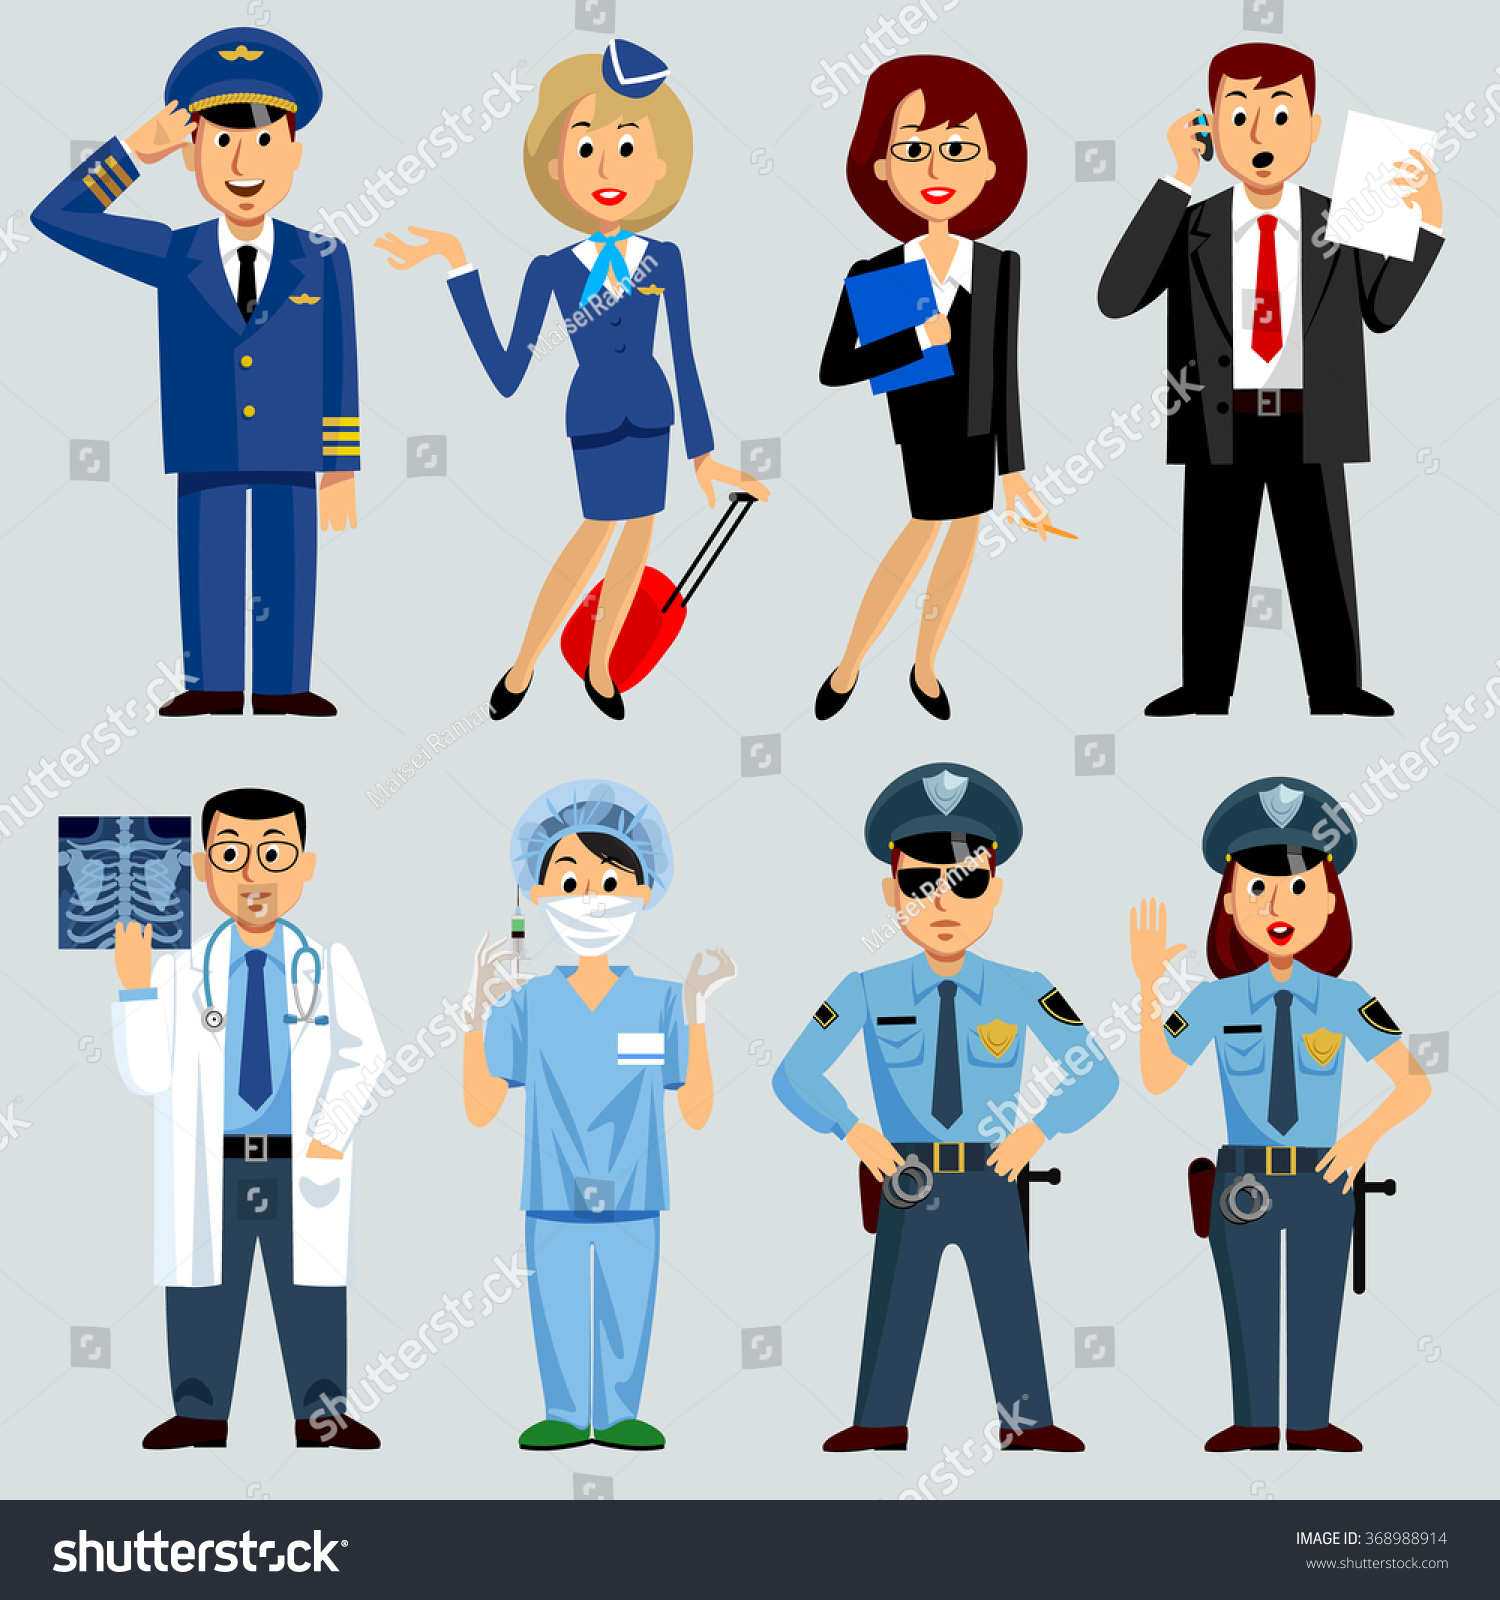 Image result for different work professions